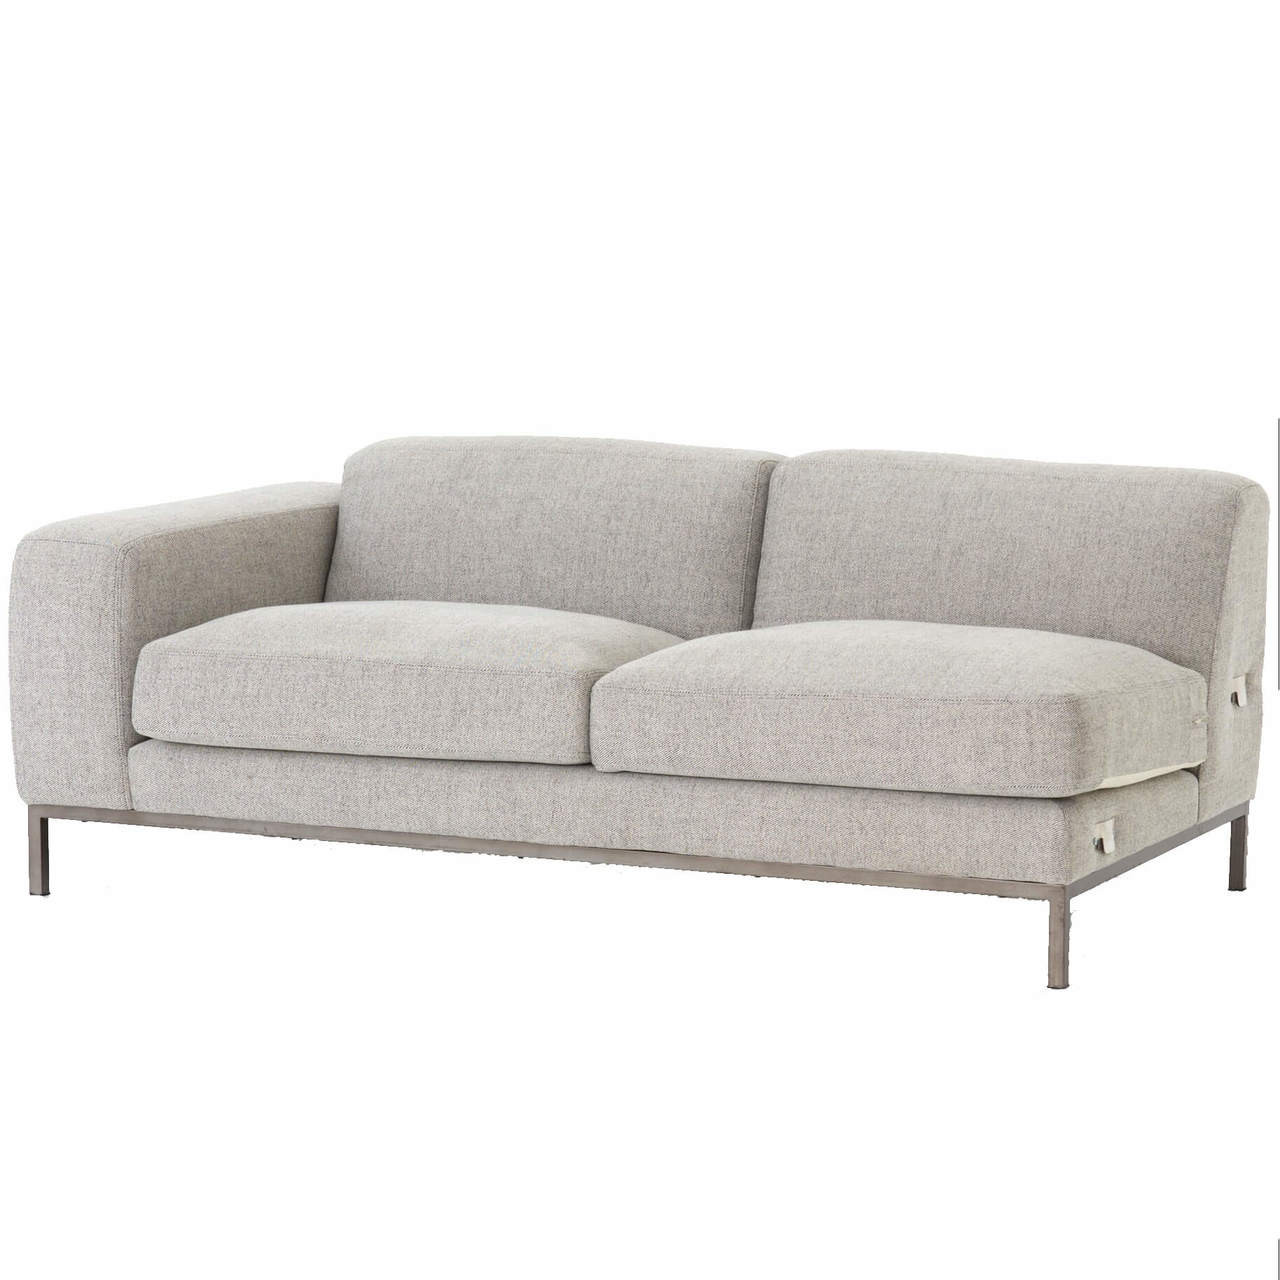 Benedict modern grey fabric laf sectional sofa